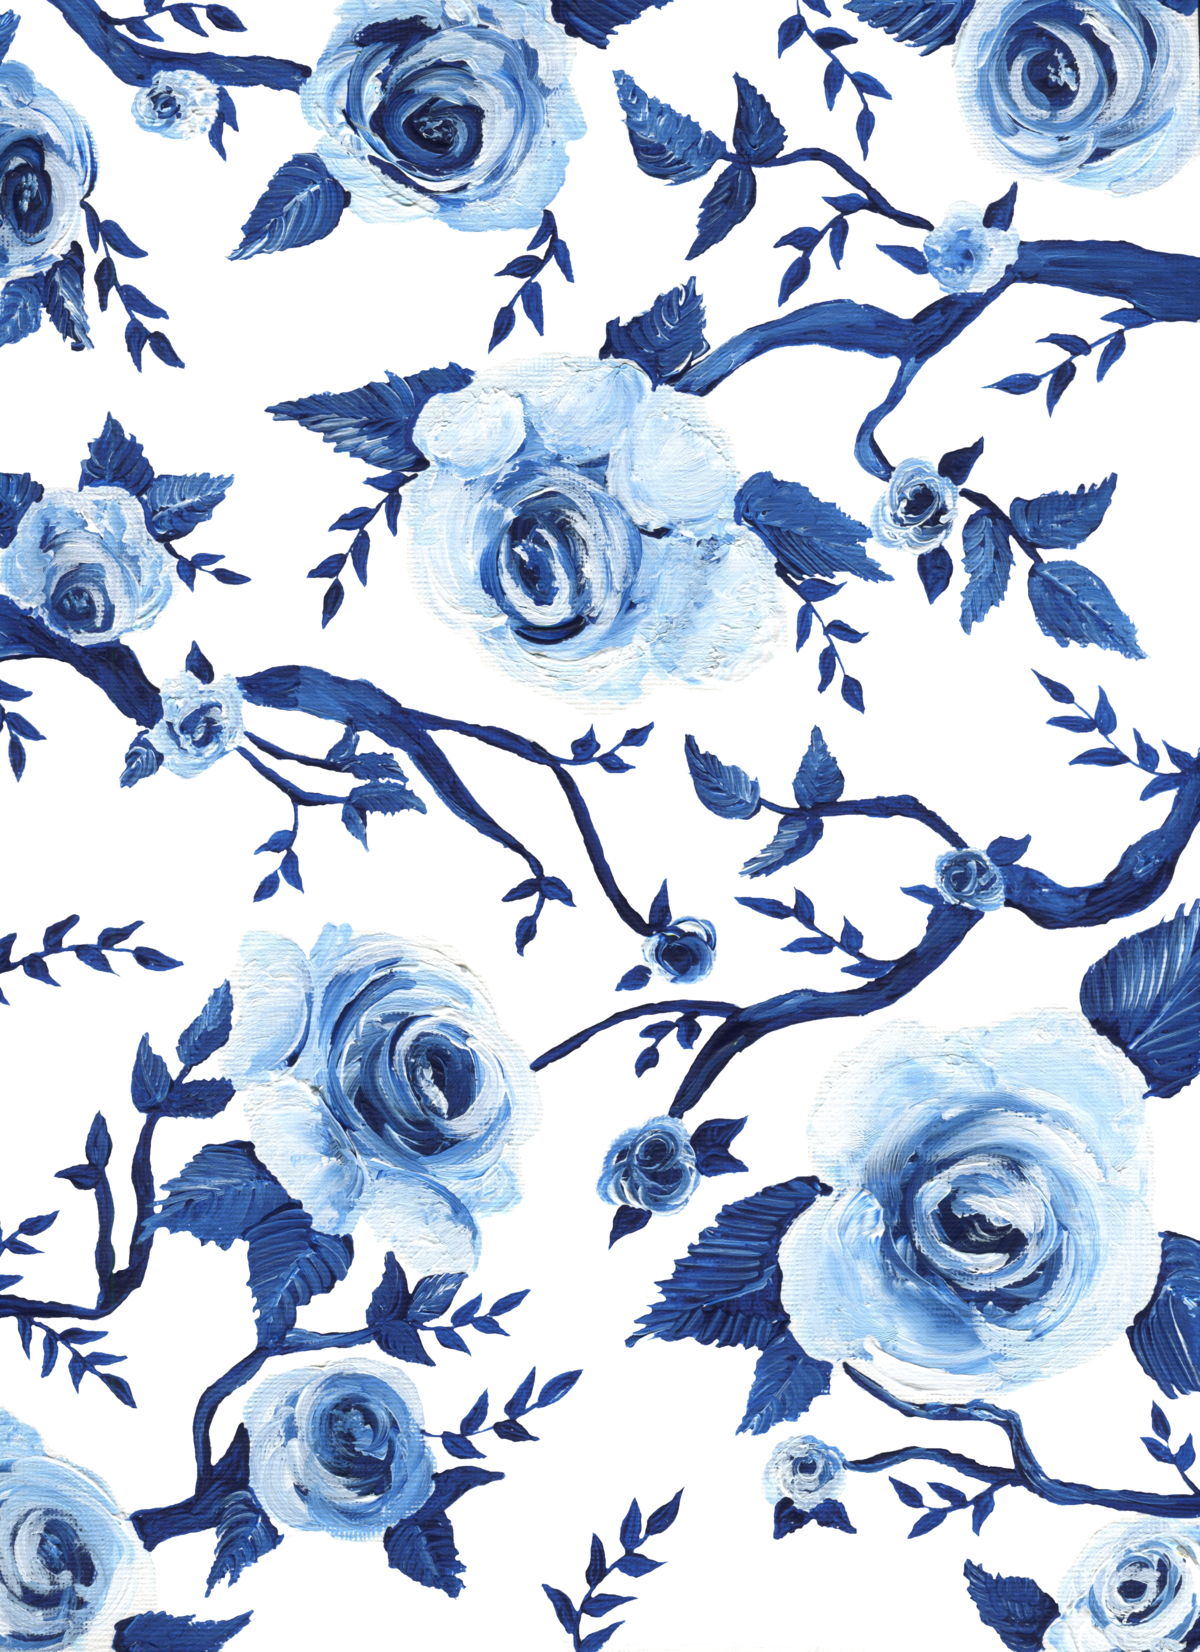 By Brittany Branson blue and white hand painted wedding stationery pattern